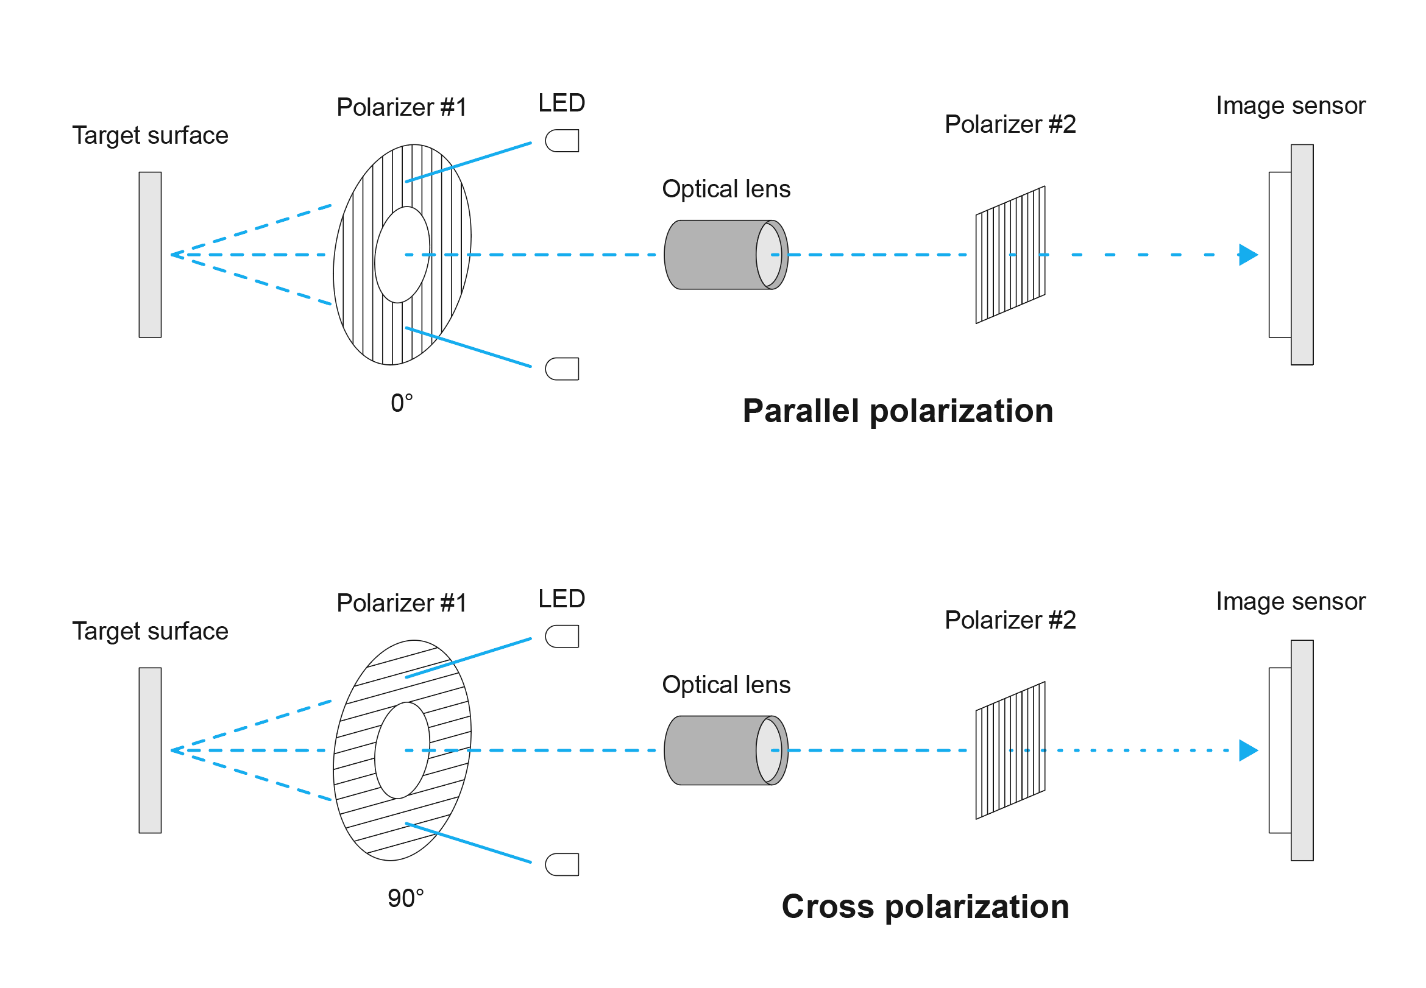 Dino-Lite polarizing digital microscope in its parallel and cross polarized configurations.